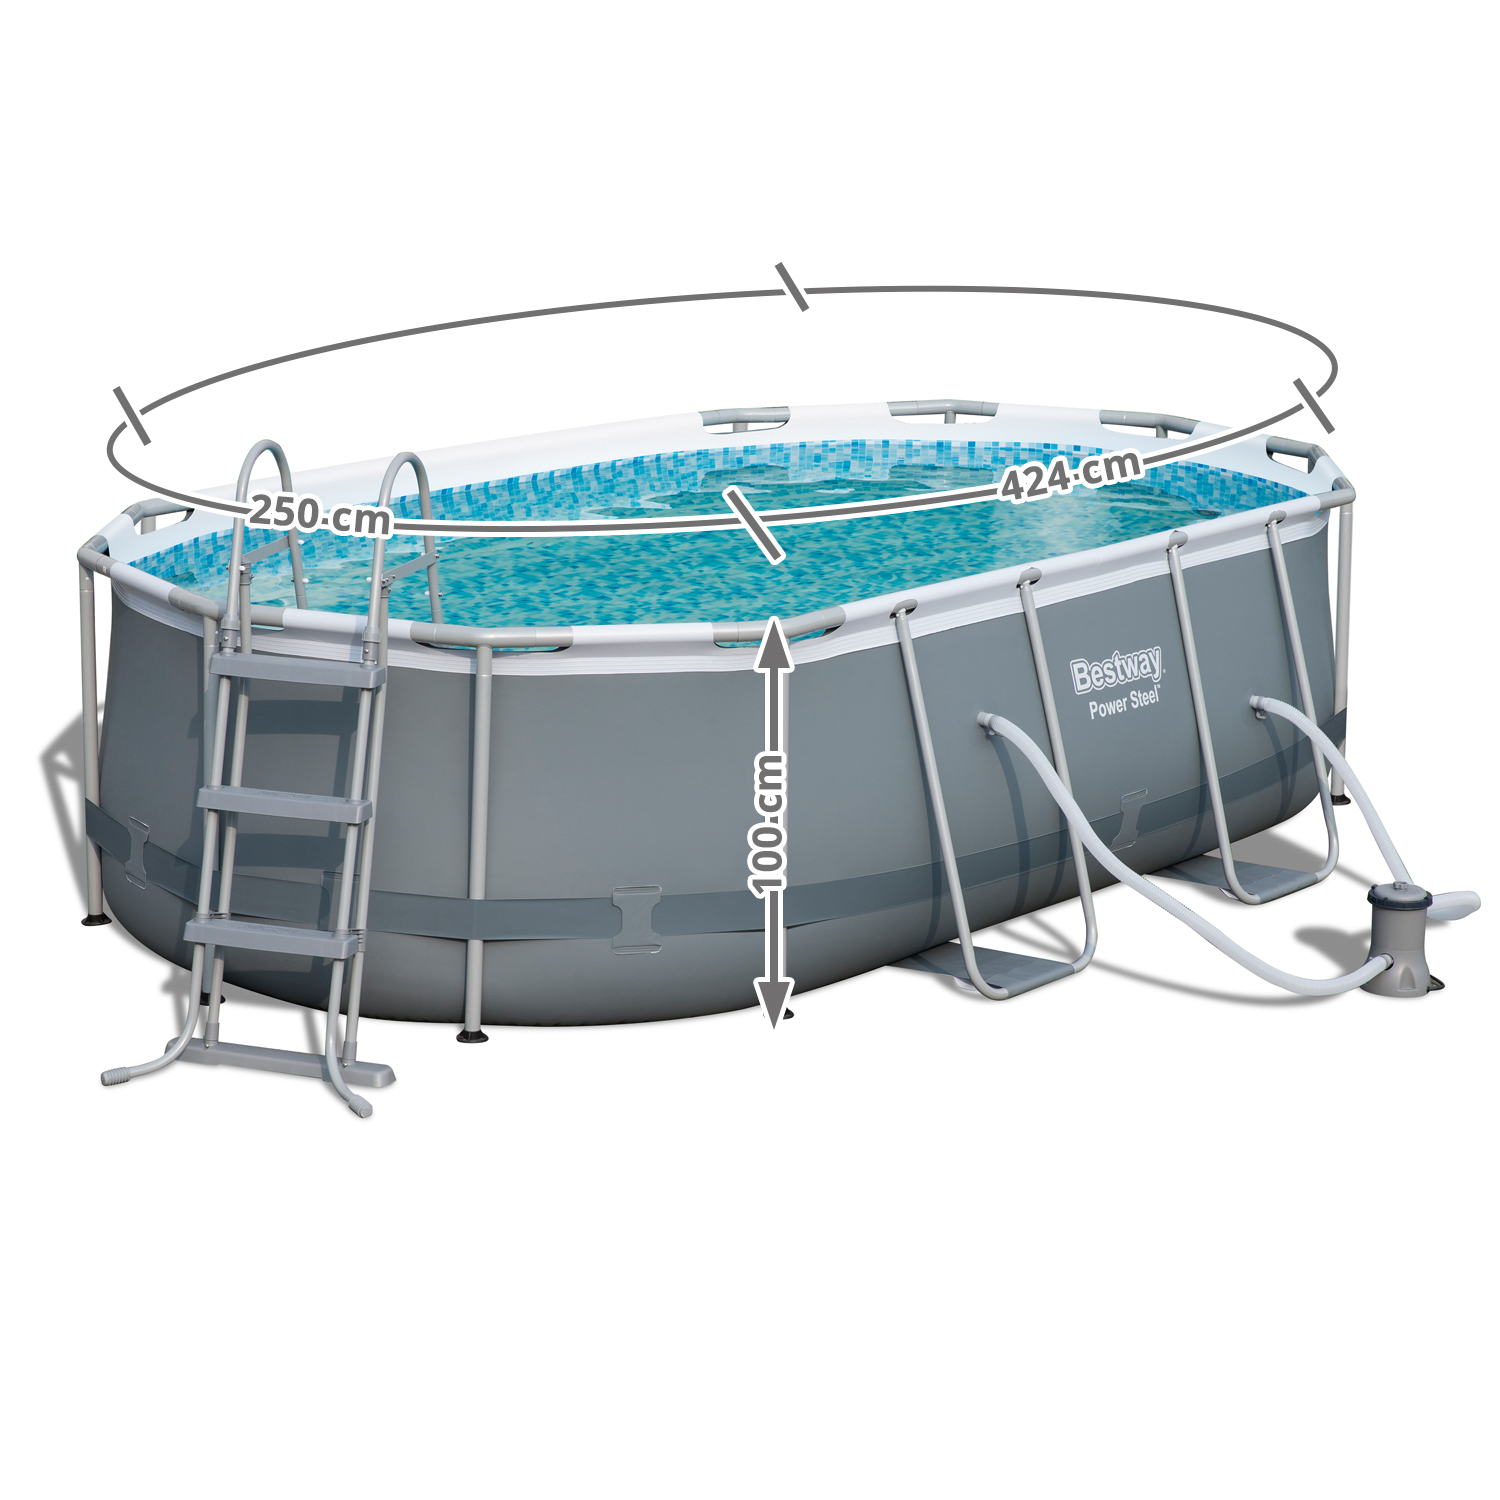 Pool Rund Oder Oval Bestway 56620 Power Steel Oval Pool Set 424x250x100 Cm